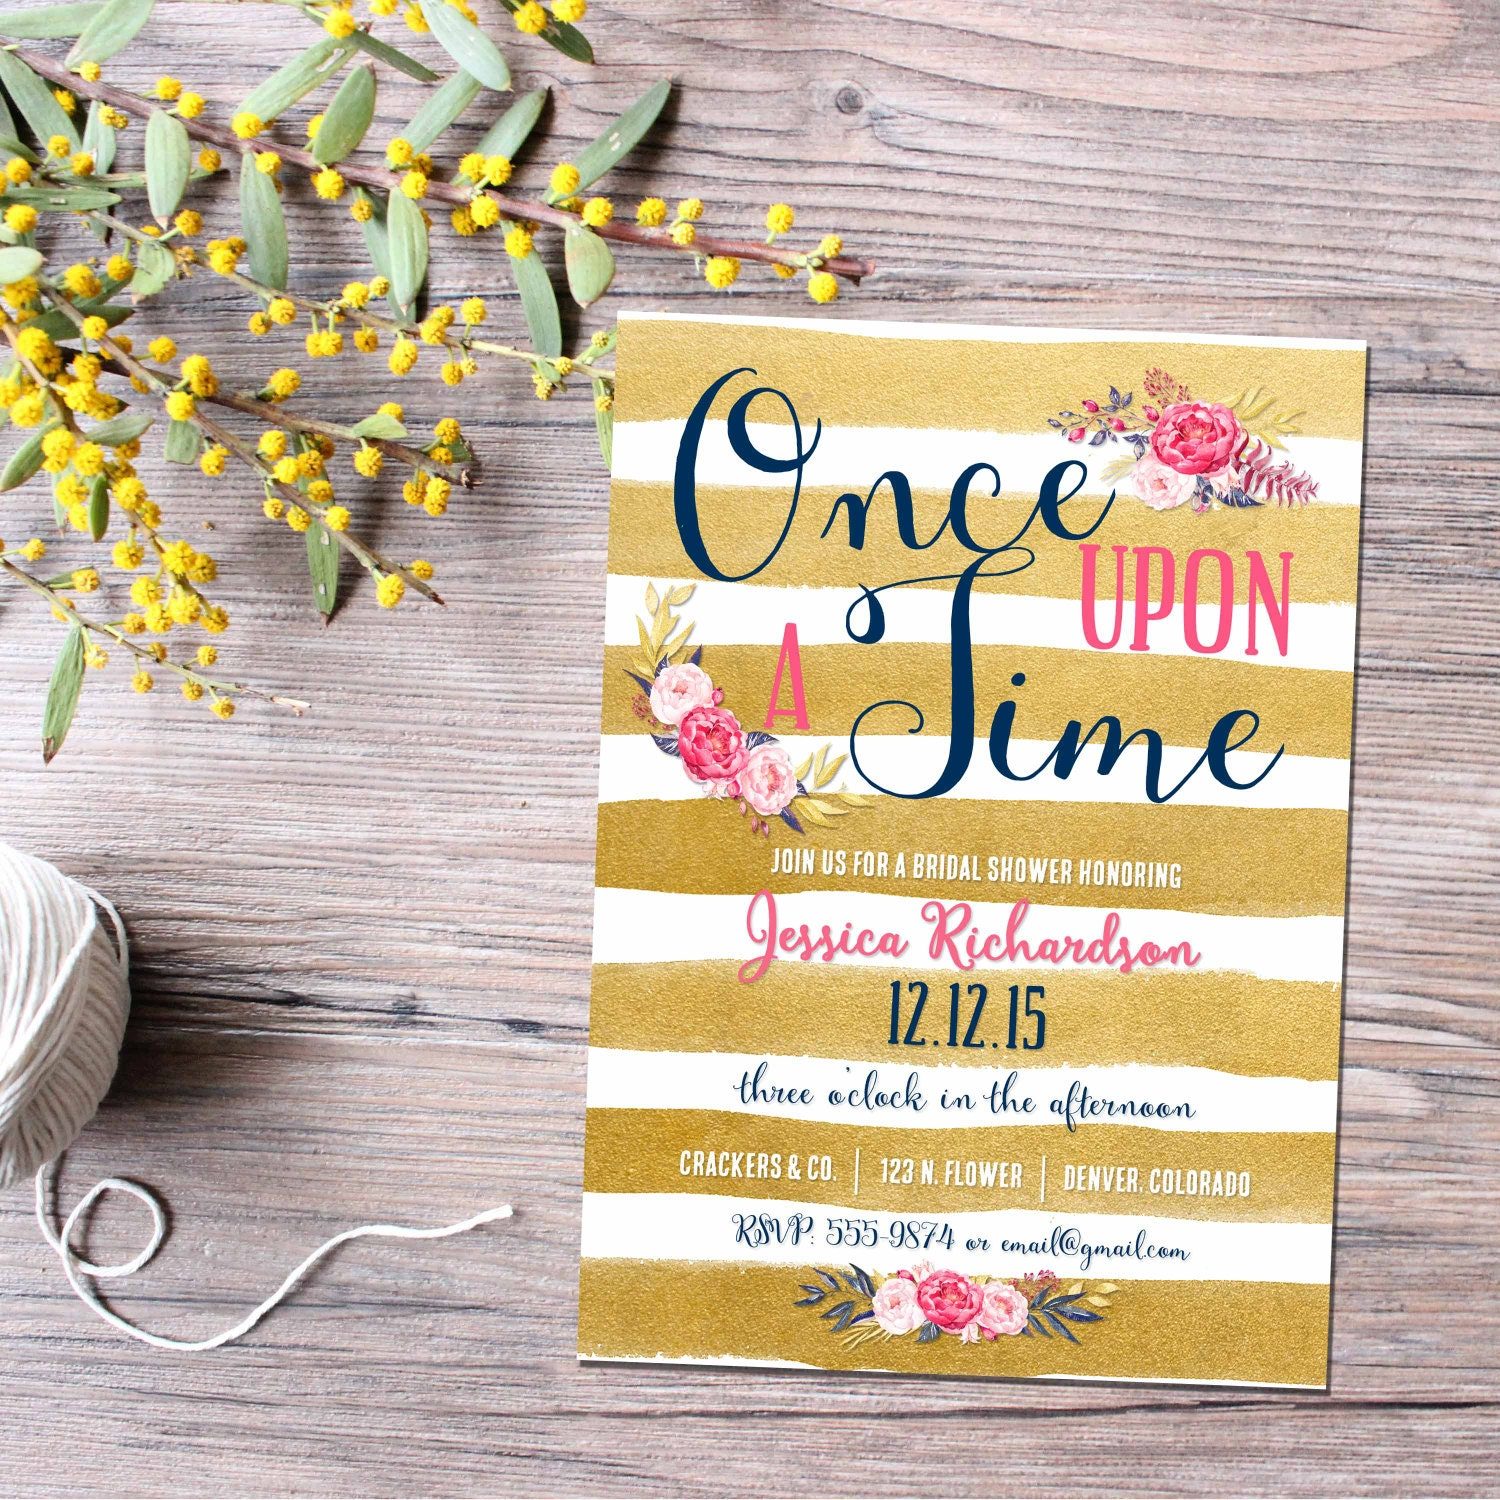 Storybook baby shower invitation Once upon a time baby shower Gold